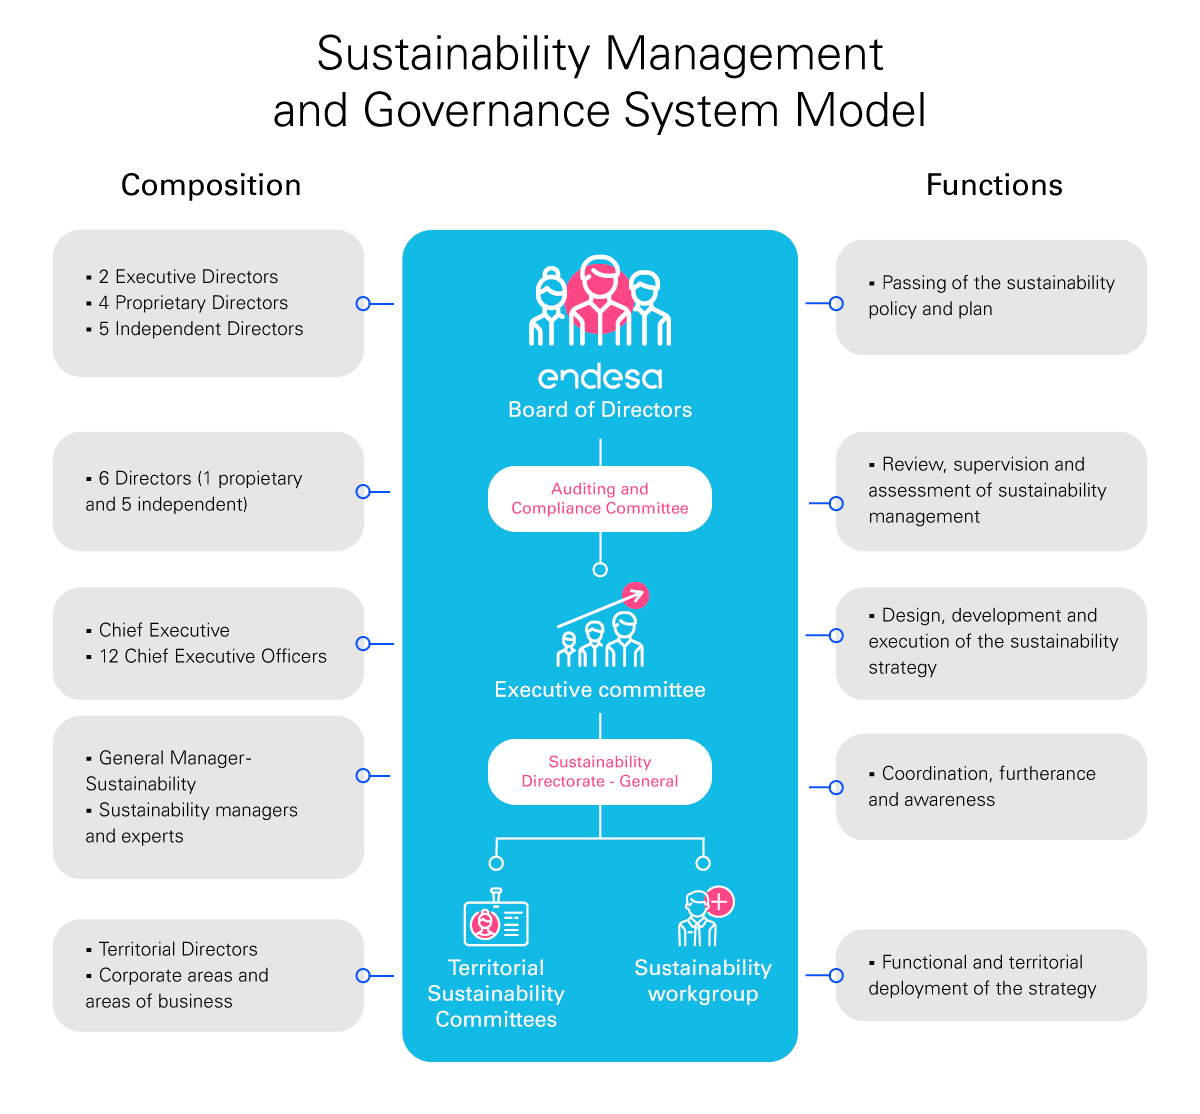 Graphic about the Governance System Model and Sustainability Management. Composition-> 2 Executive directors, 4 Proprietary directors, 5 Independent directors, 6 Directors (1 proprietary and 5 independent), Chief Executive, 12 Chief Executive Officers, General Manager sustainability, Sustainability managers and experts, Territorial directors, Corporate areas and areas of business. Functions -> Passing of the sustainability policy and plan, Review, supervision and evaluation of sutainability management, Desing, development and execution of the sutainability strategy